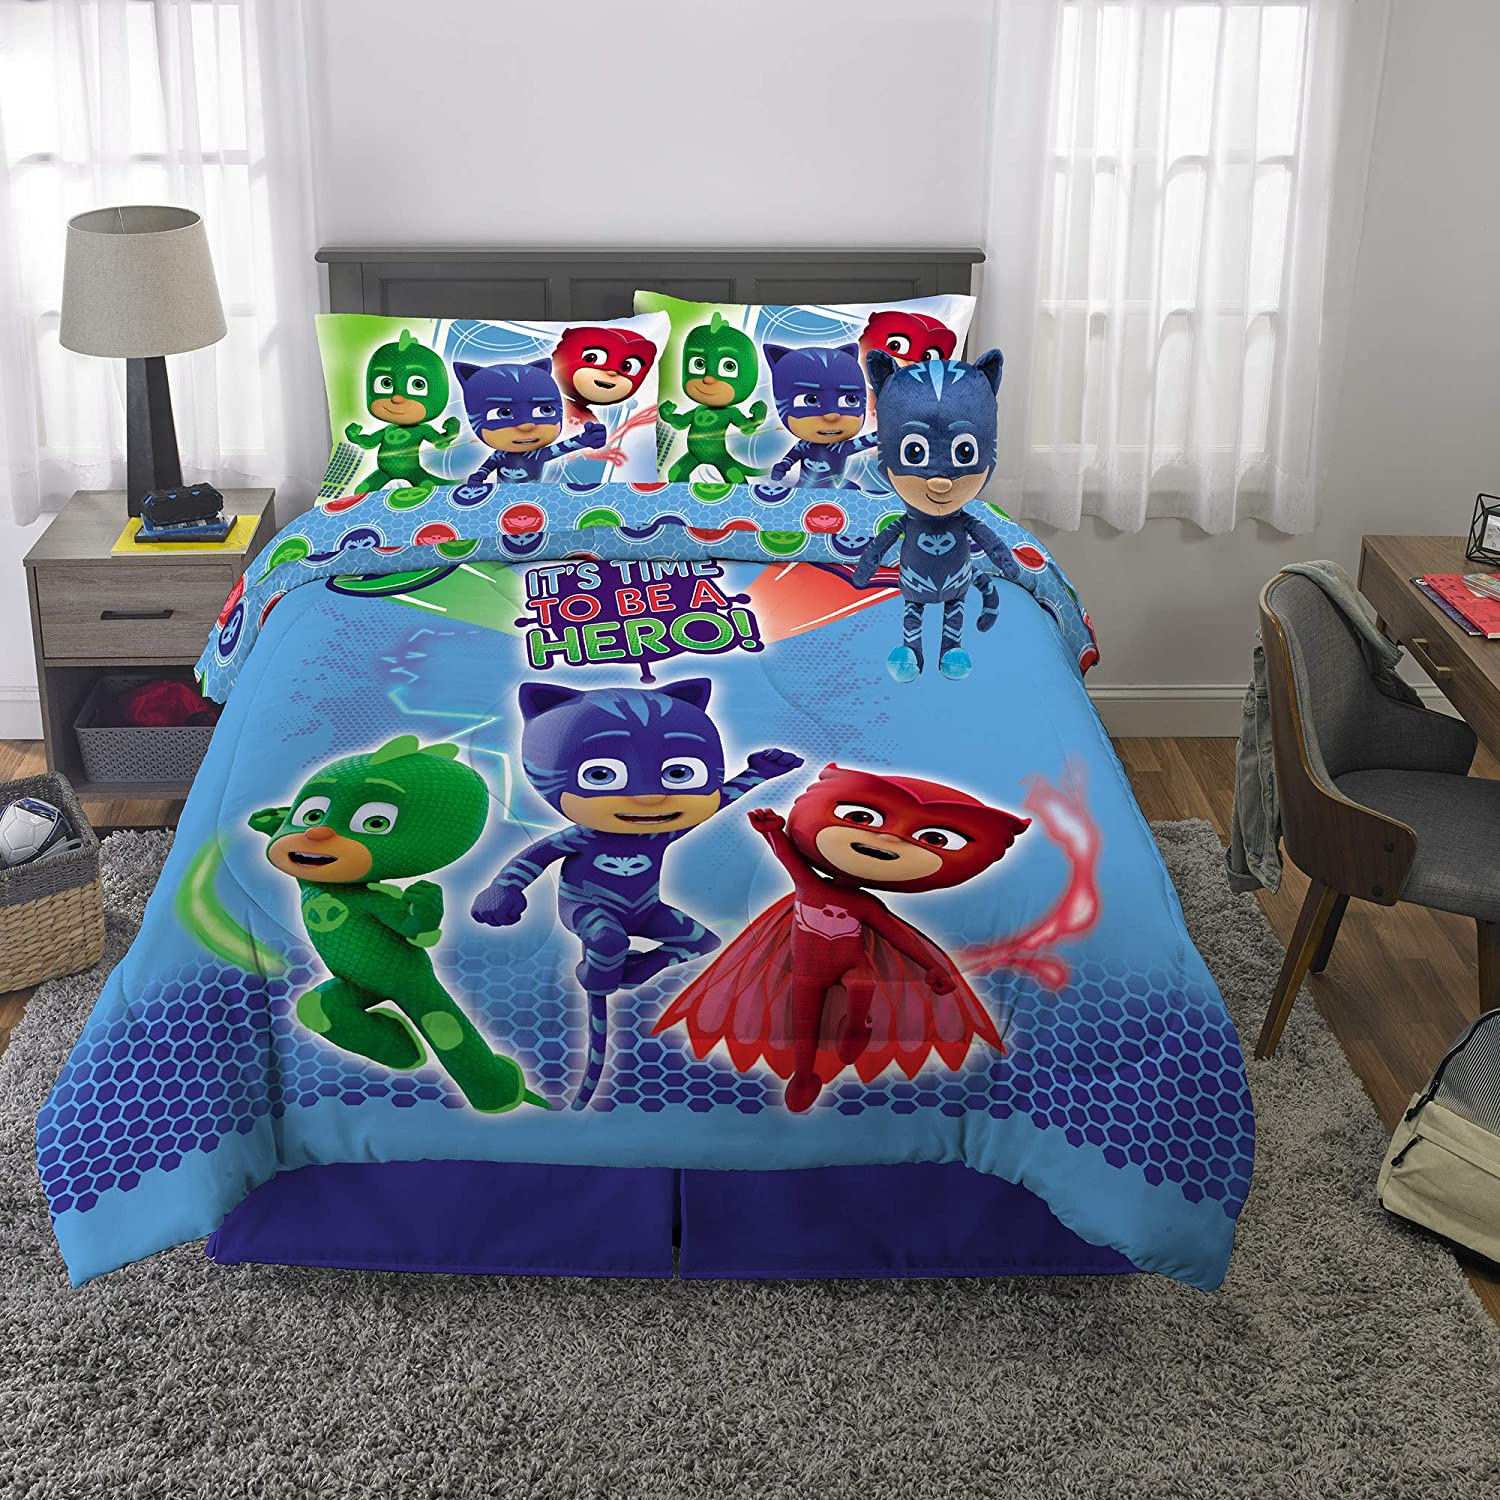 Franco Kids Bedding Super Soft Comforter with Sheets and Plush Cuddle Pillow Set, 6 Piece Full Size, PJ Masks